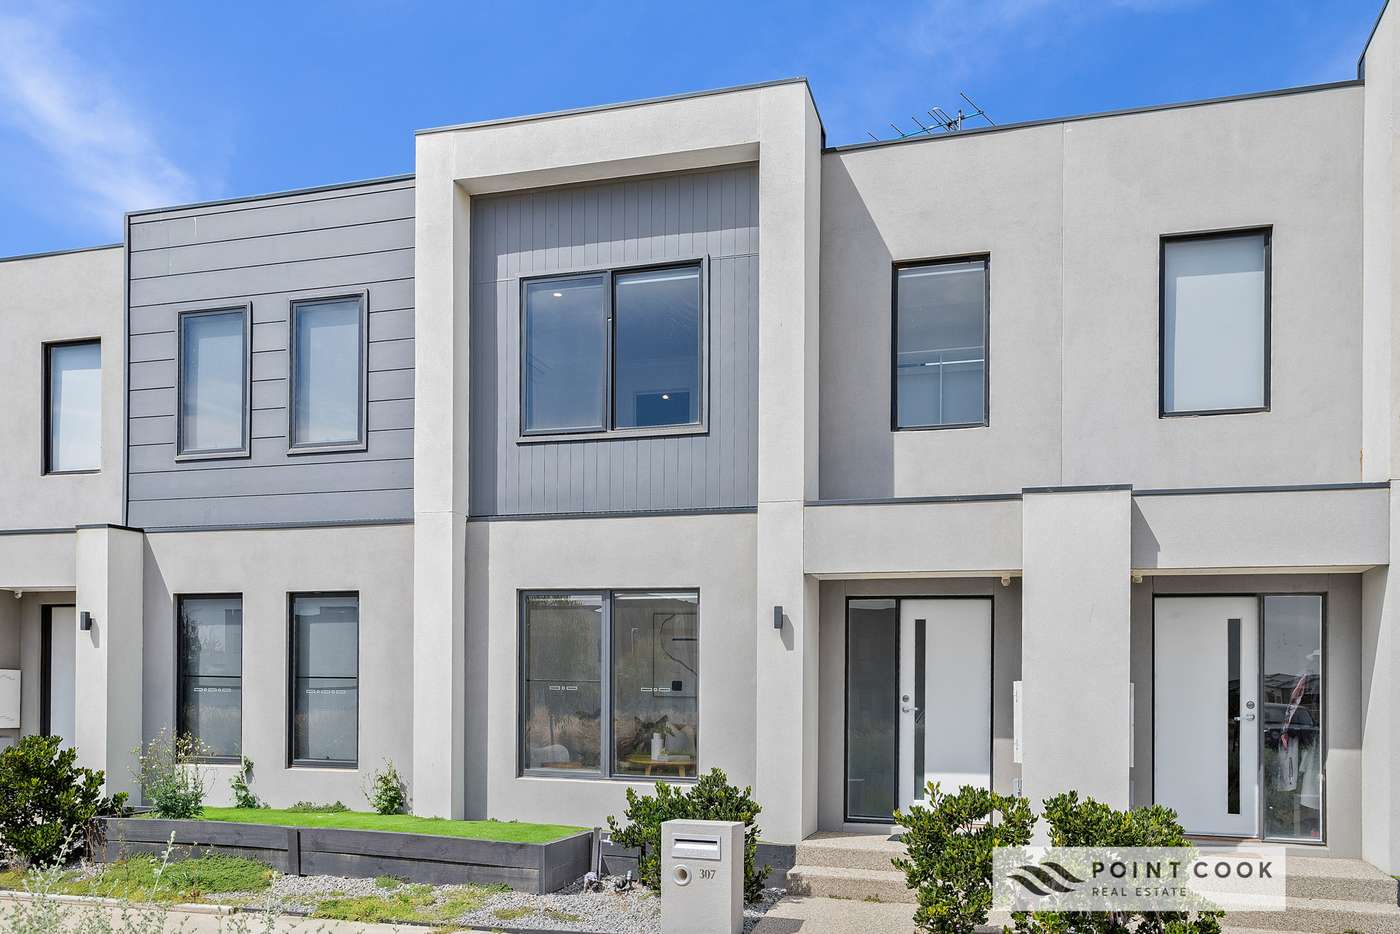 Main view of Homely townhouse listing, 307 Dunnings Road, Point Cook VIC 3030